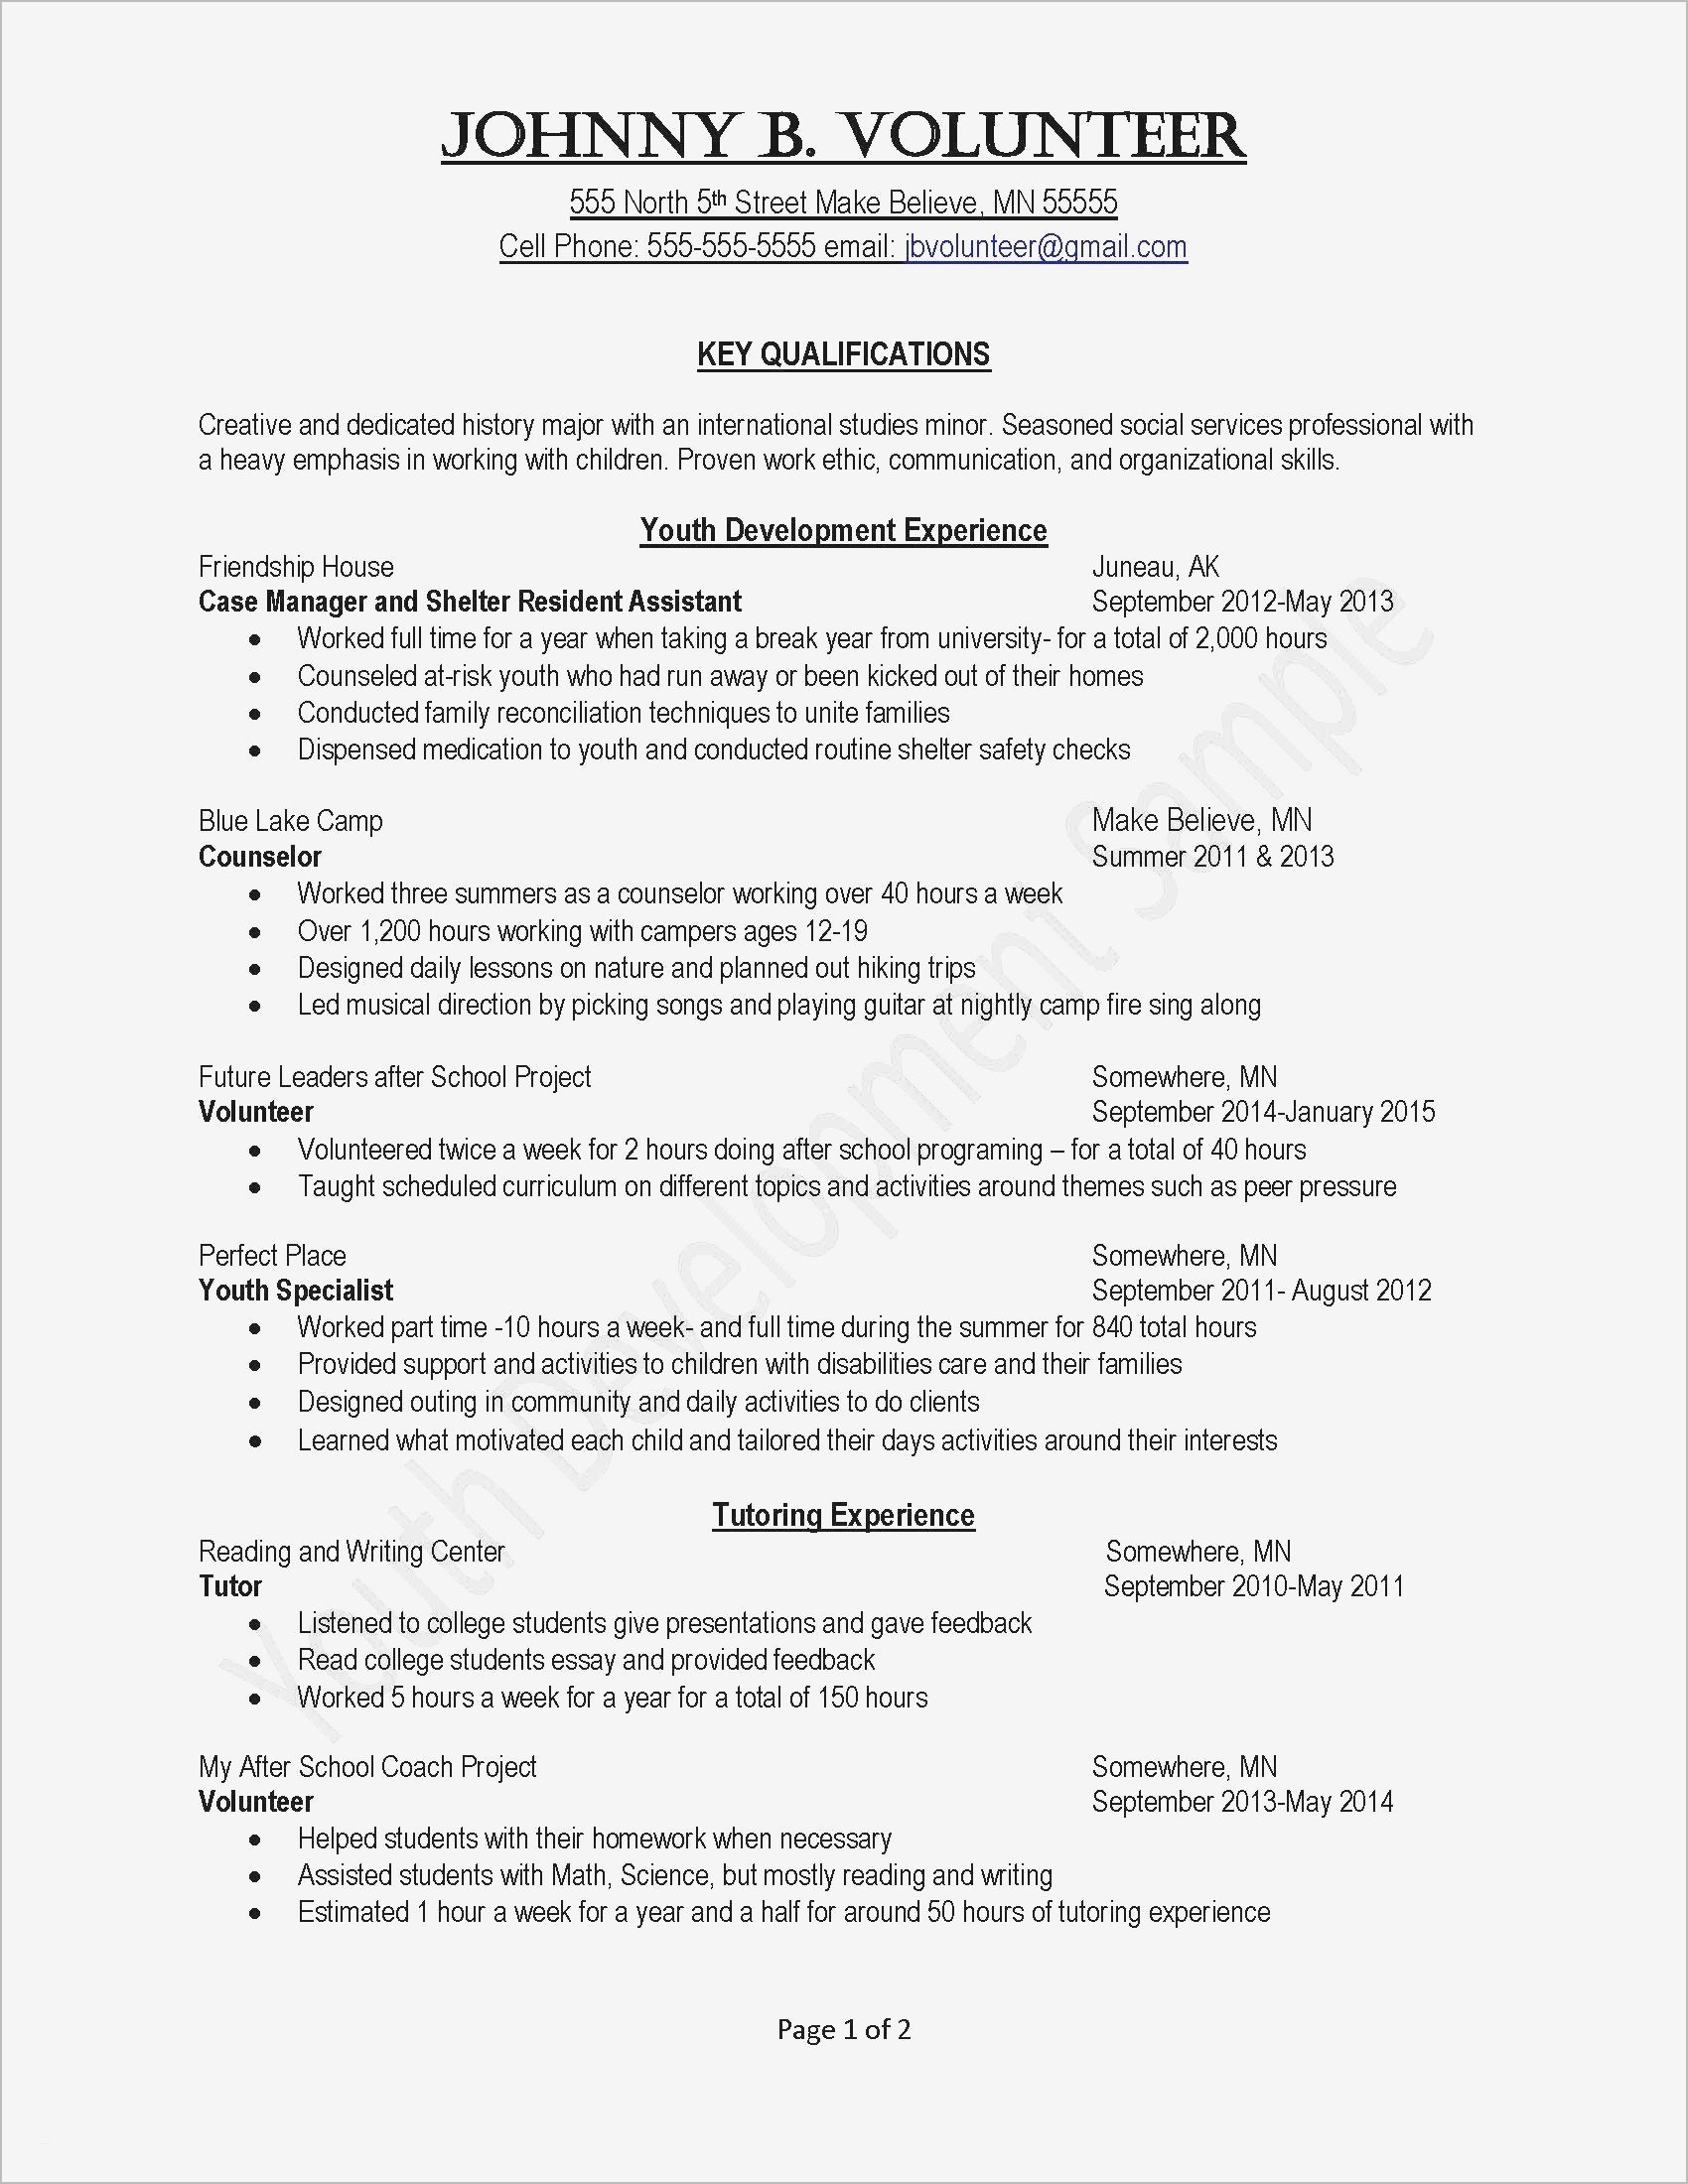 Targeted Cover Letter Template - Cover Letter for Student Job Valid New Job Fer Letter Template Us